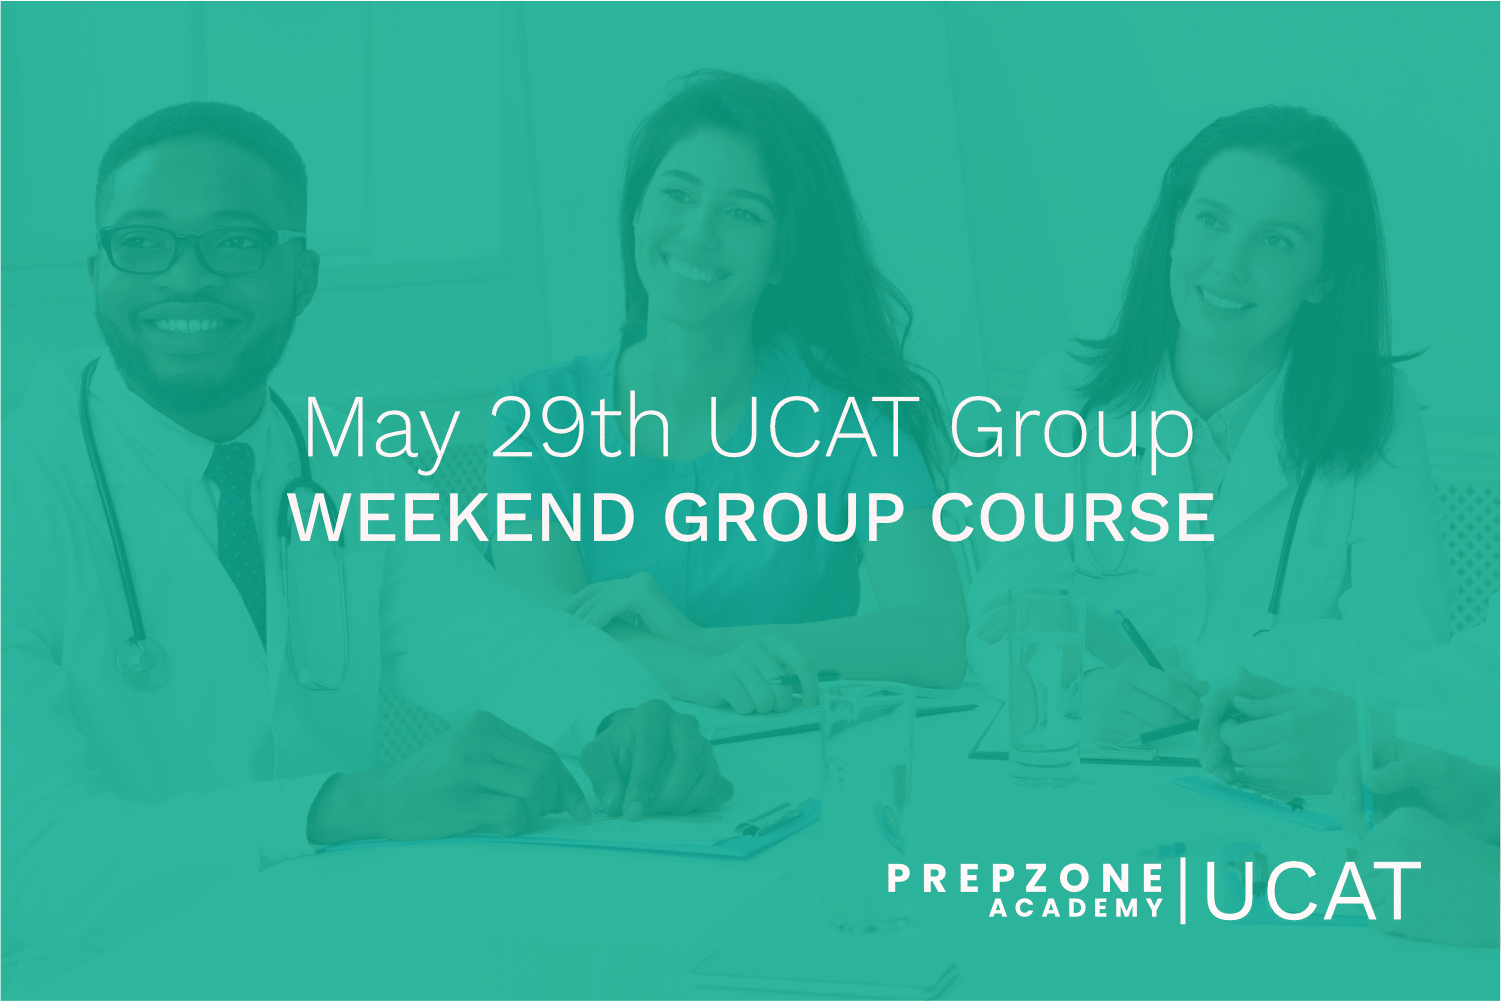 UCAT Weekend Group Course Schedule – May 29th, 2021